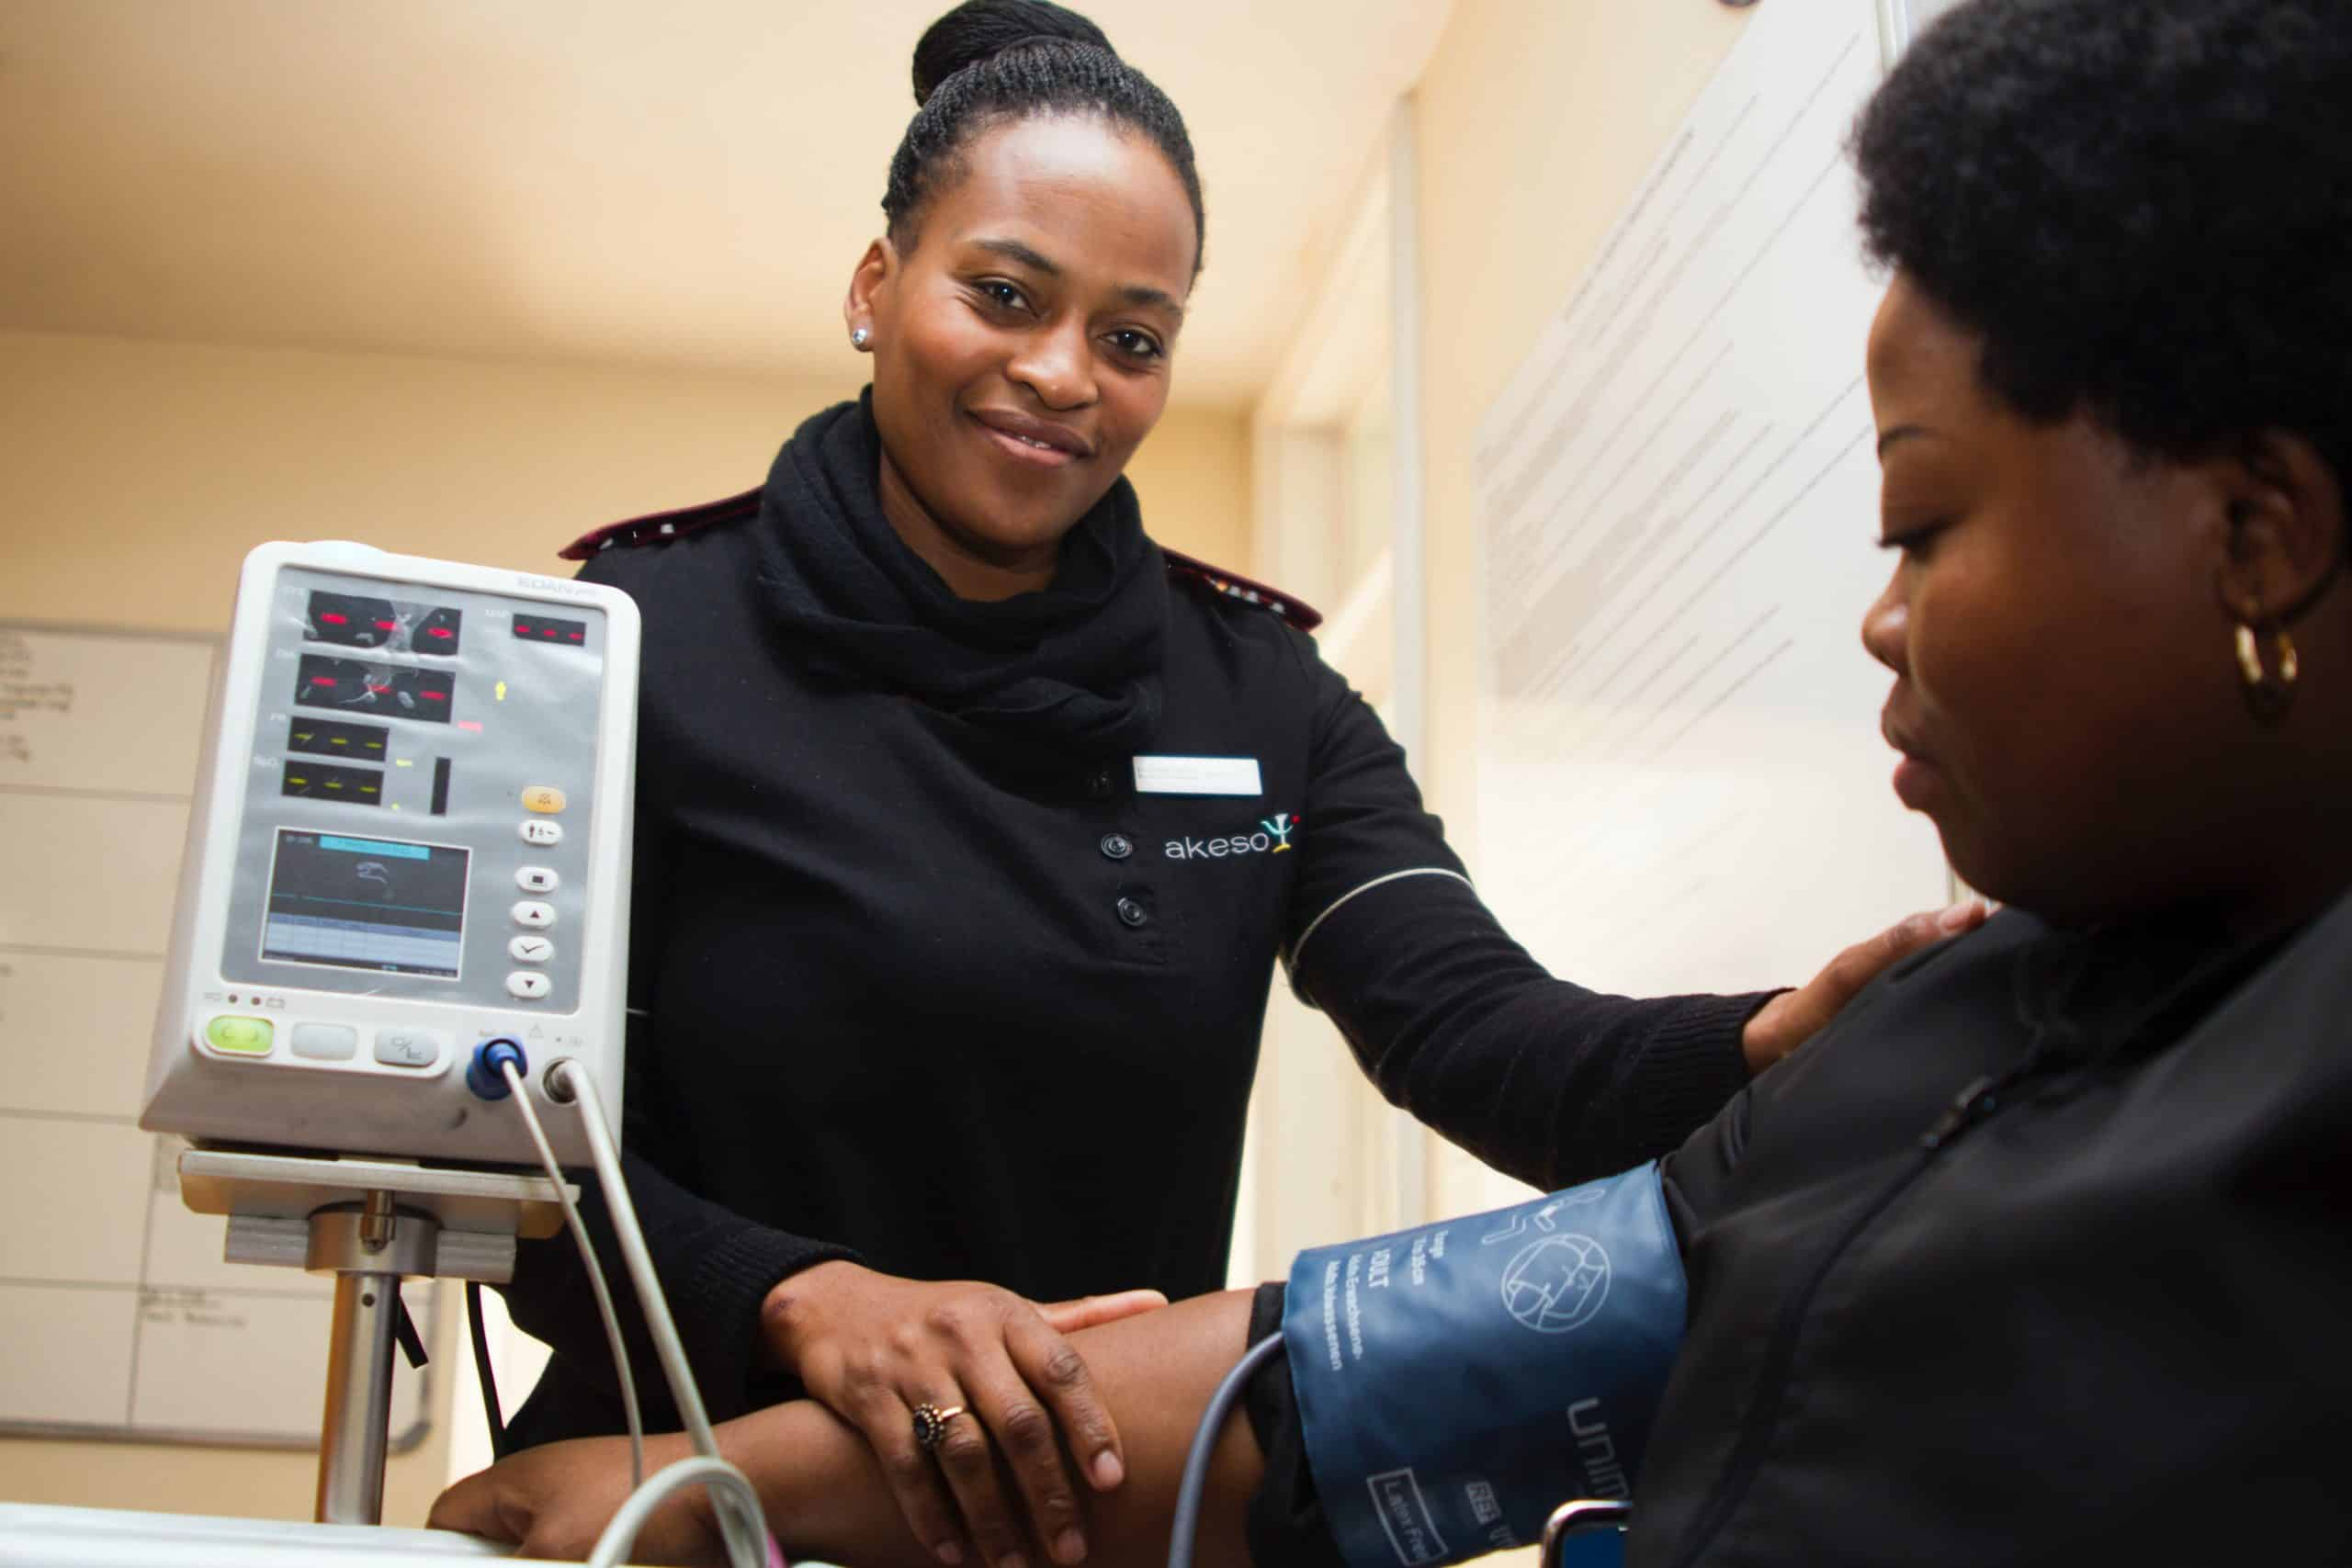 Blood pressure is a component of metabolic syndrome